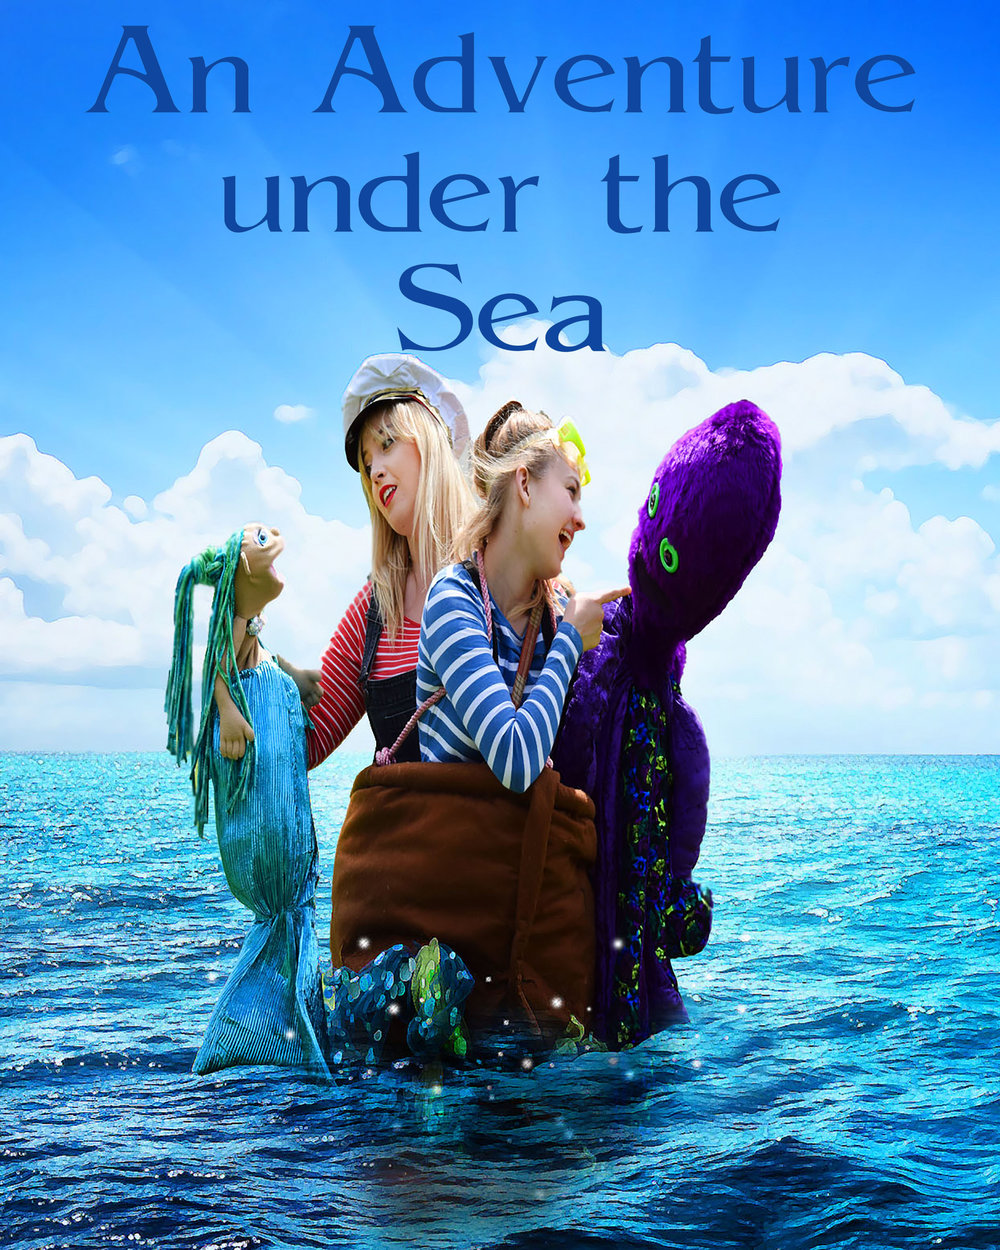 An Adventure under the Sea - Pack your bags and come with us for an excting adventure in the sparkly blue sea. Meet a mermaid, a friendly octopus and a very silly shark and then join us for the underwater Olympics. Interactive storytelling with puppets.Age 3+